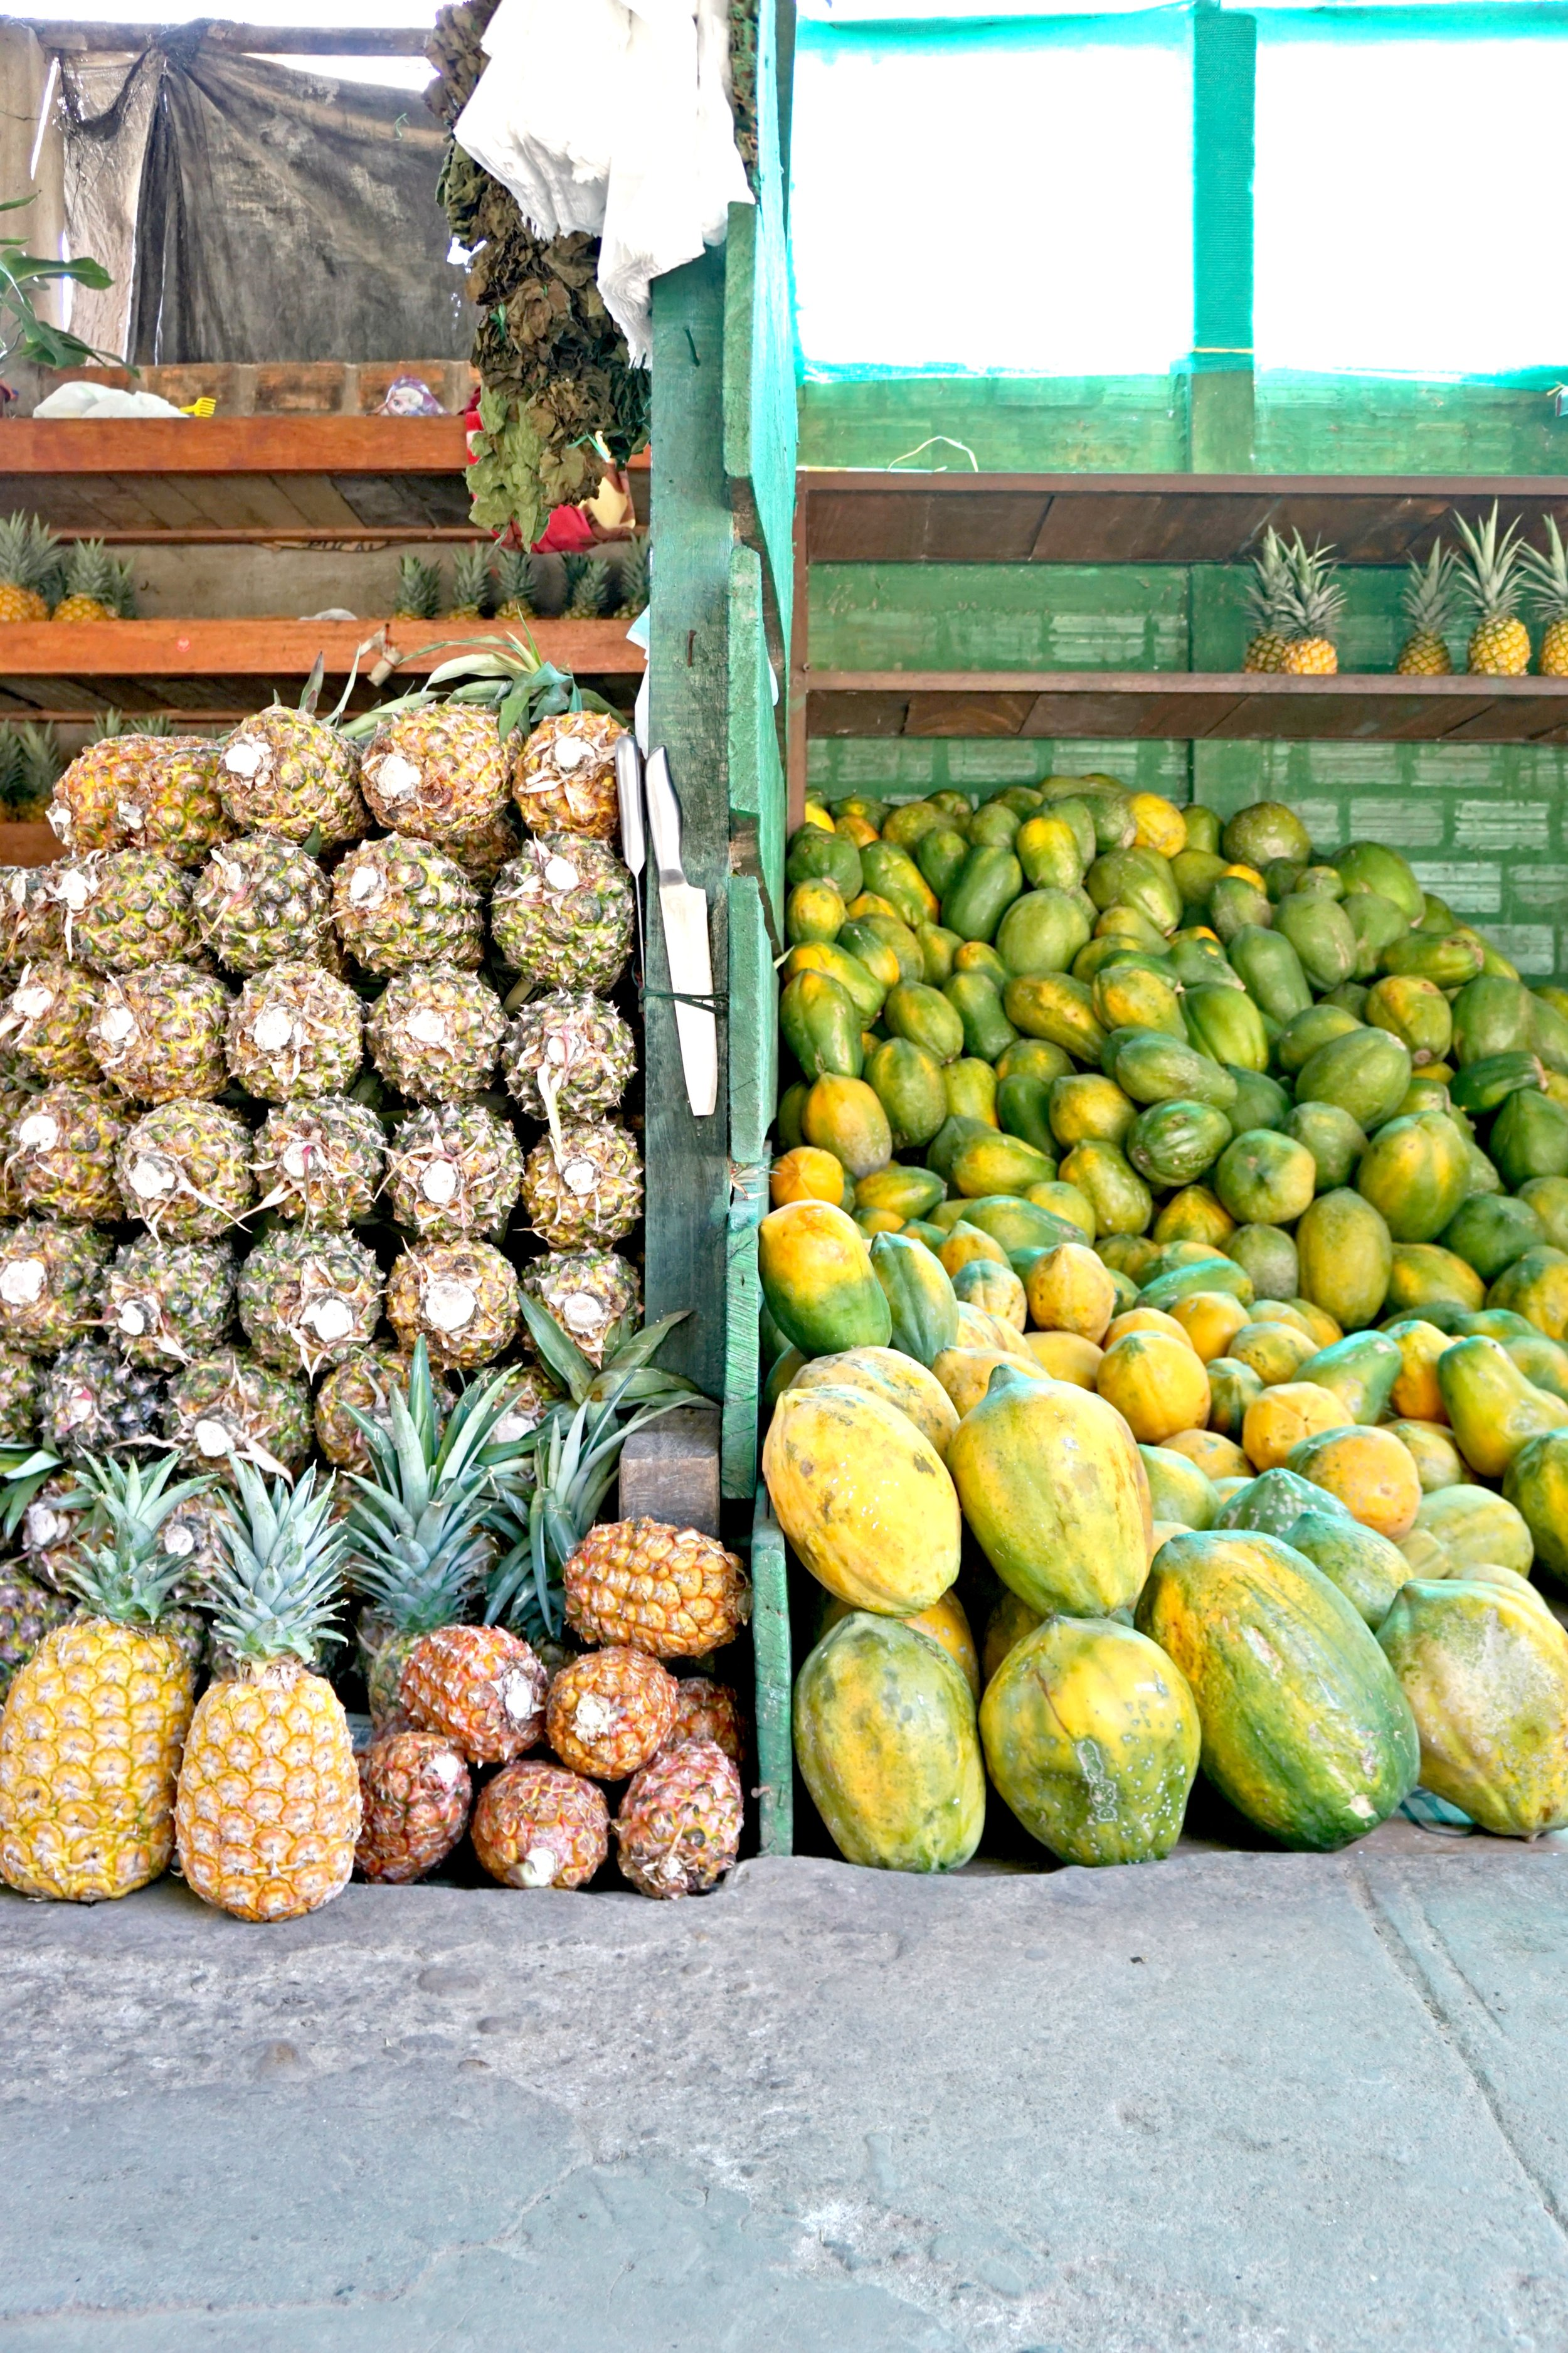 Pineapples & papayas stacked high in Tarapoto. The more yellow the pineapple the more expensive...apparently.